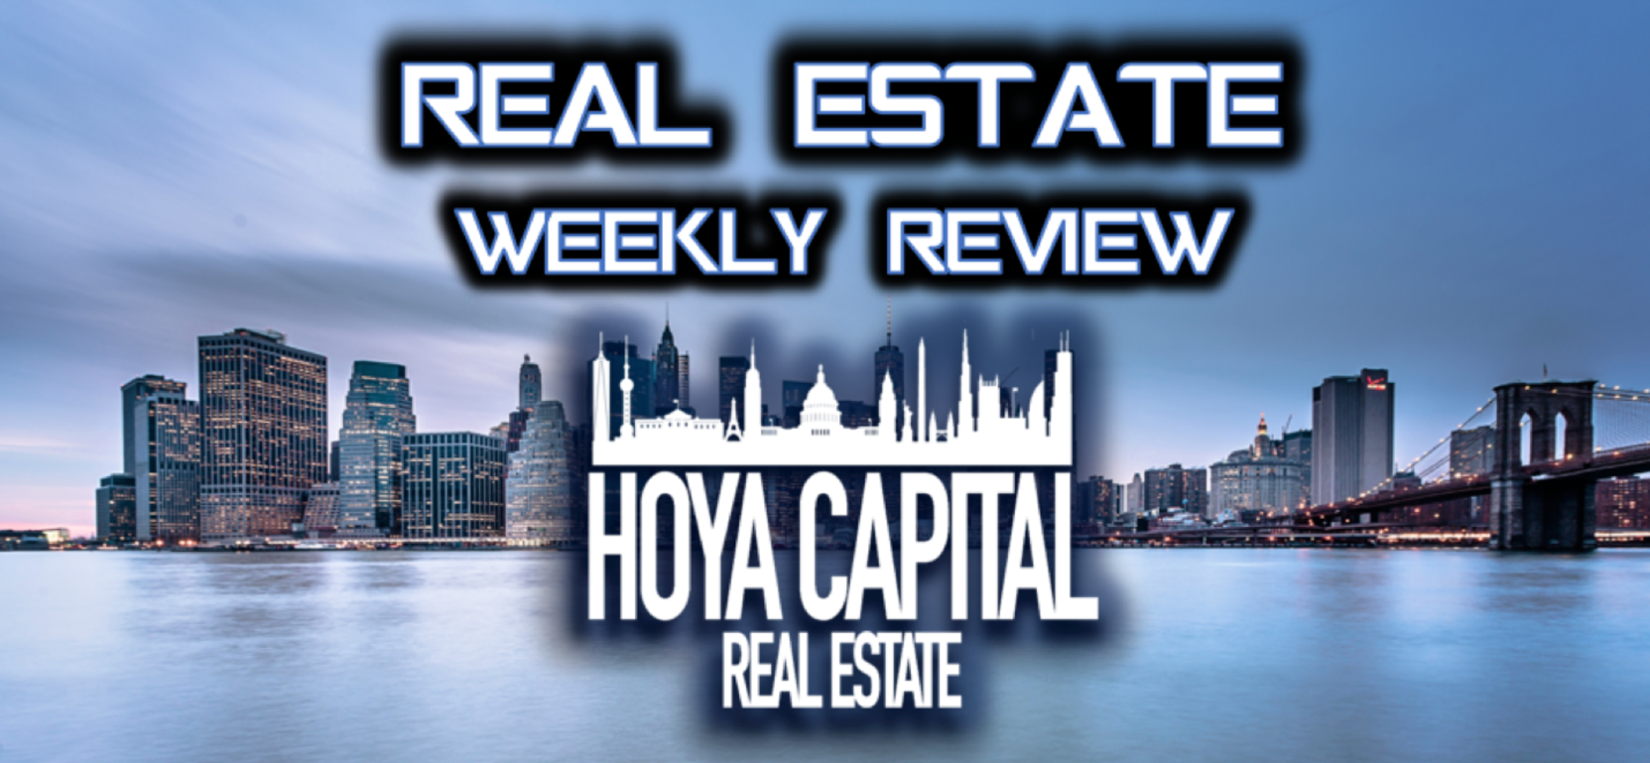 For Housing Sector And REITs, Let The Good Times Roll